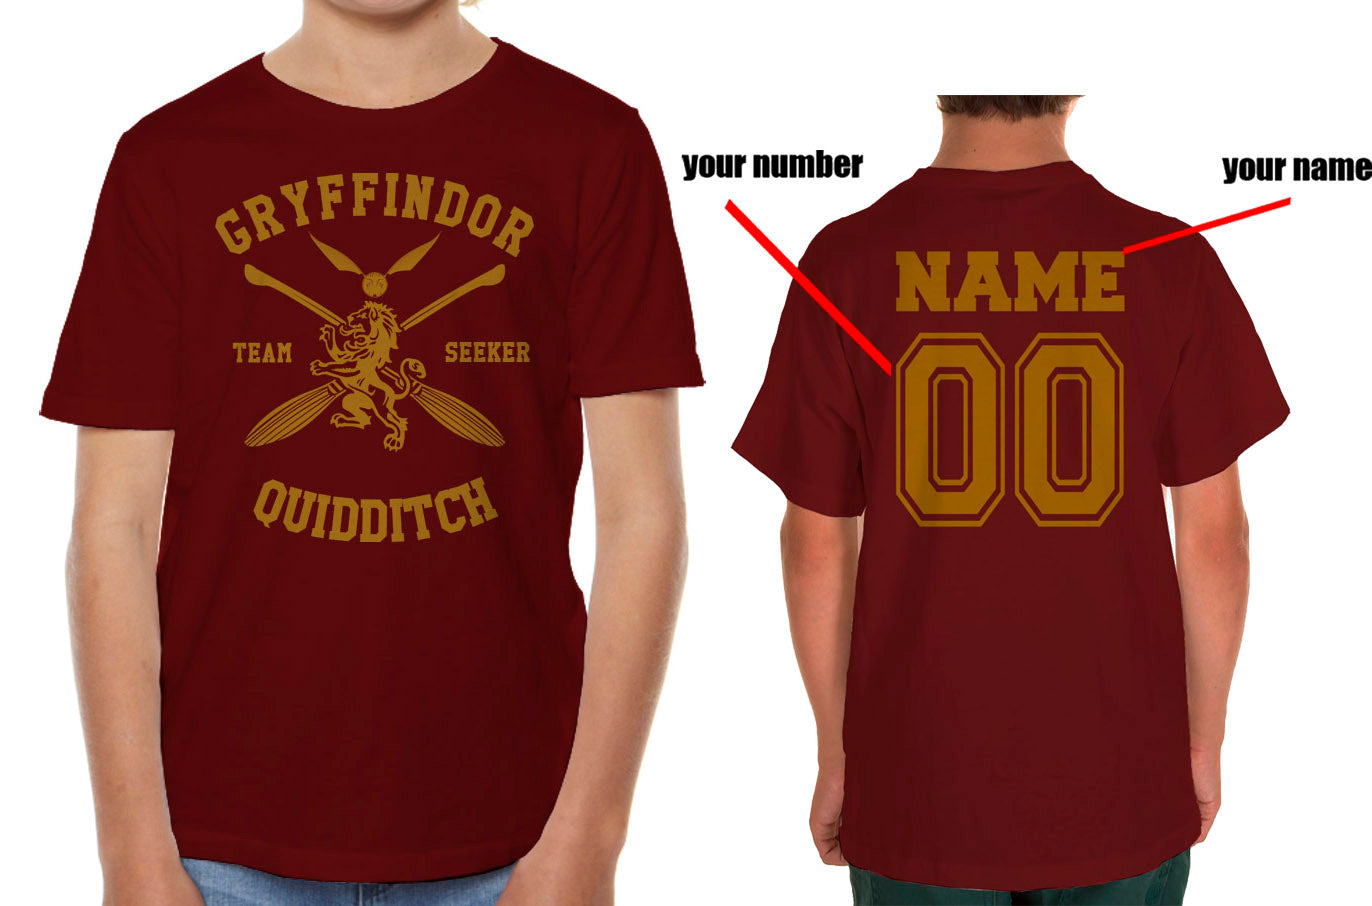 7c9fab3a9 Customize - New Gryffindor SEEKER Quidditch Team Kid / Youth T-shirt t –  Meh. Geek